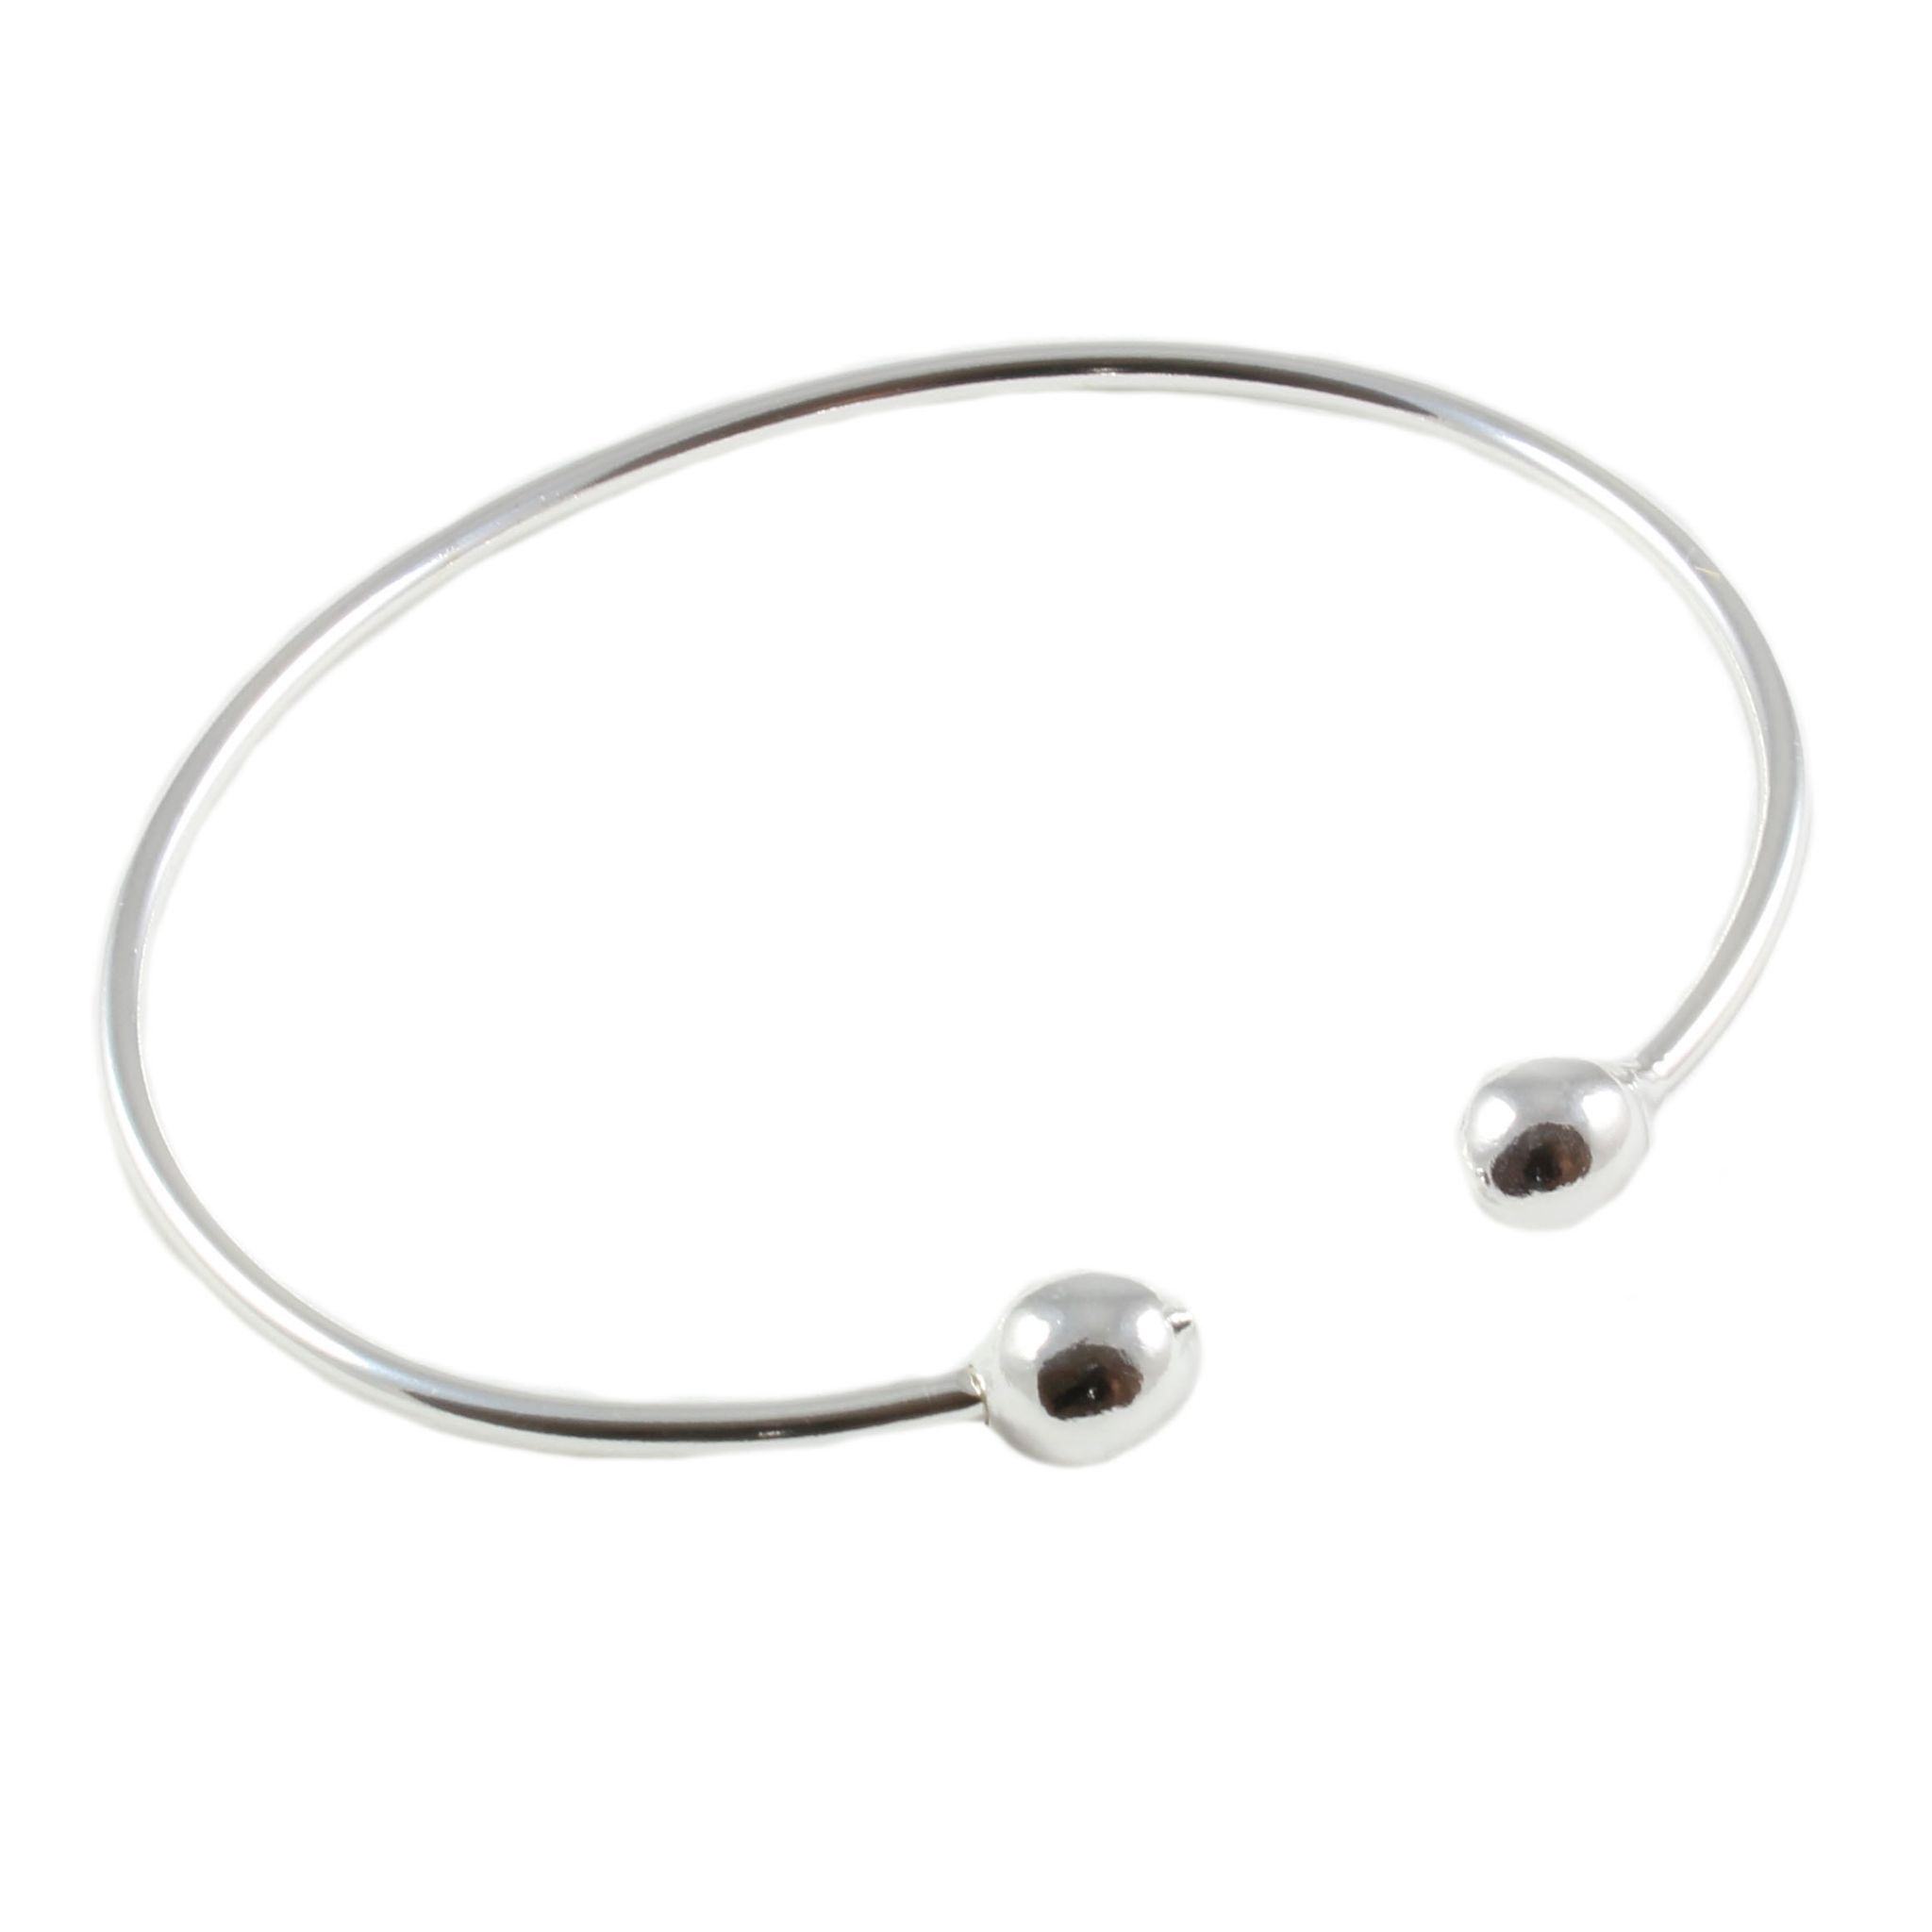 product semiprecious gallery multi slane lyst charm bangles silver stone jewelry bangle pearl bracelet sterling